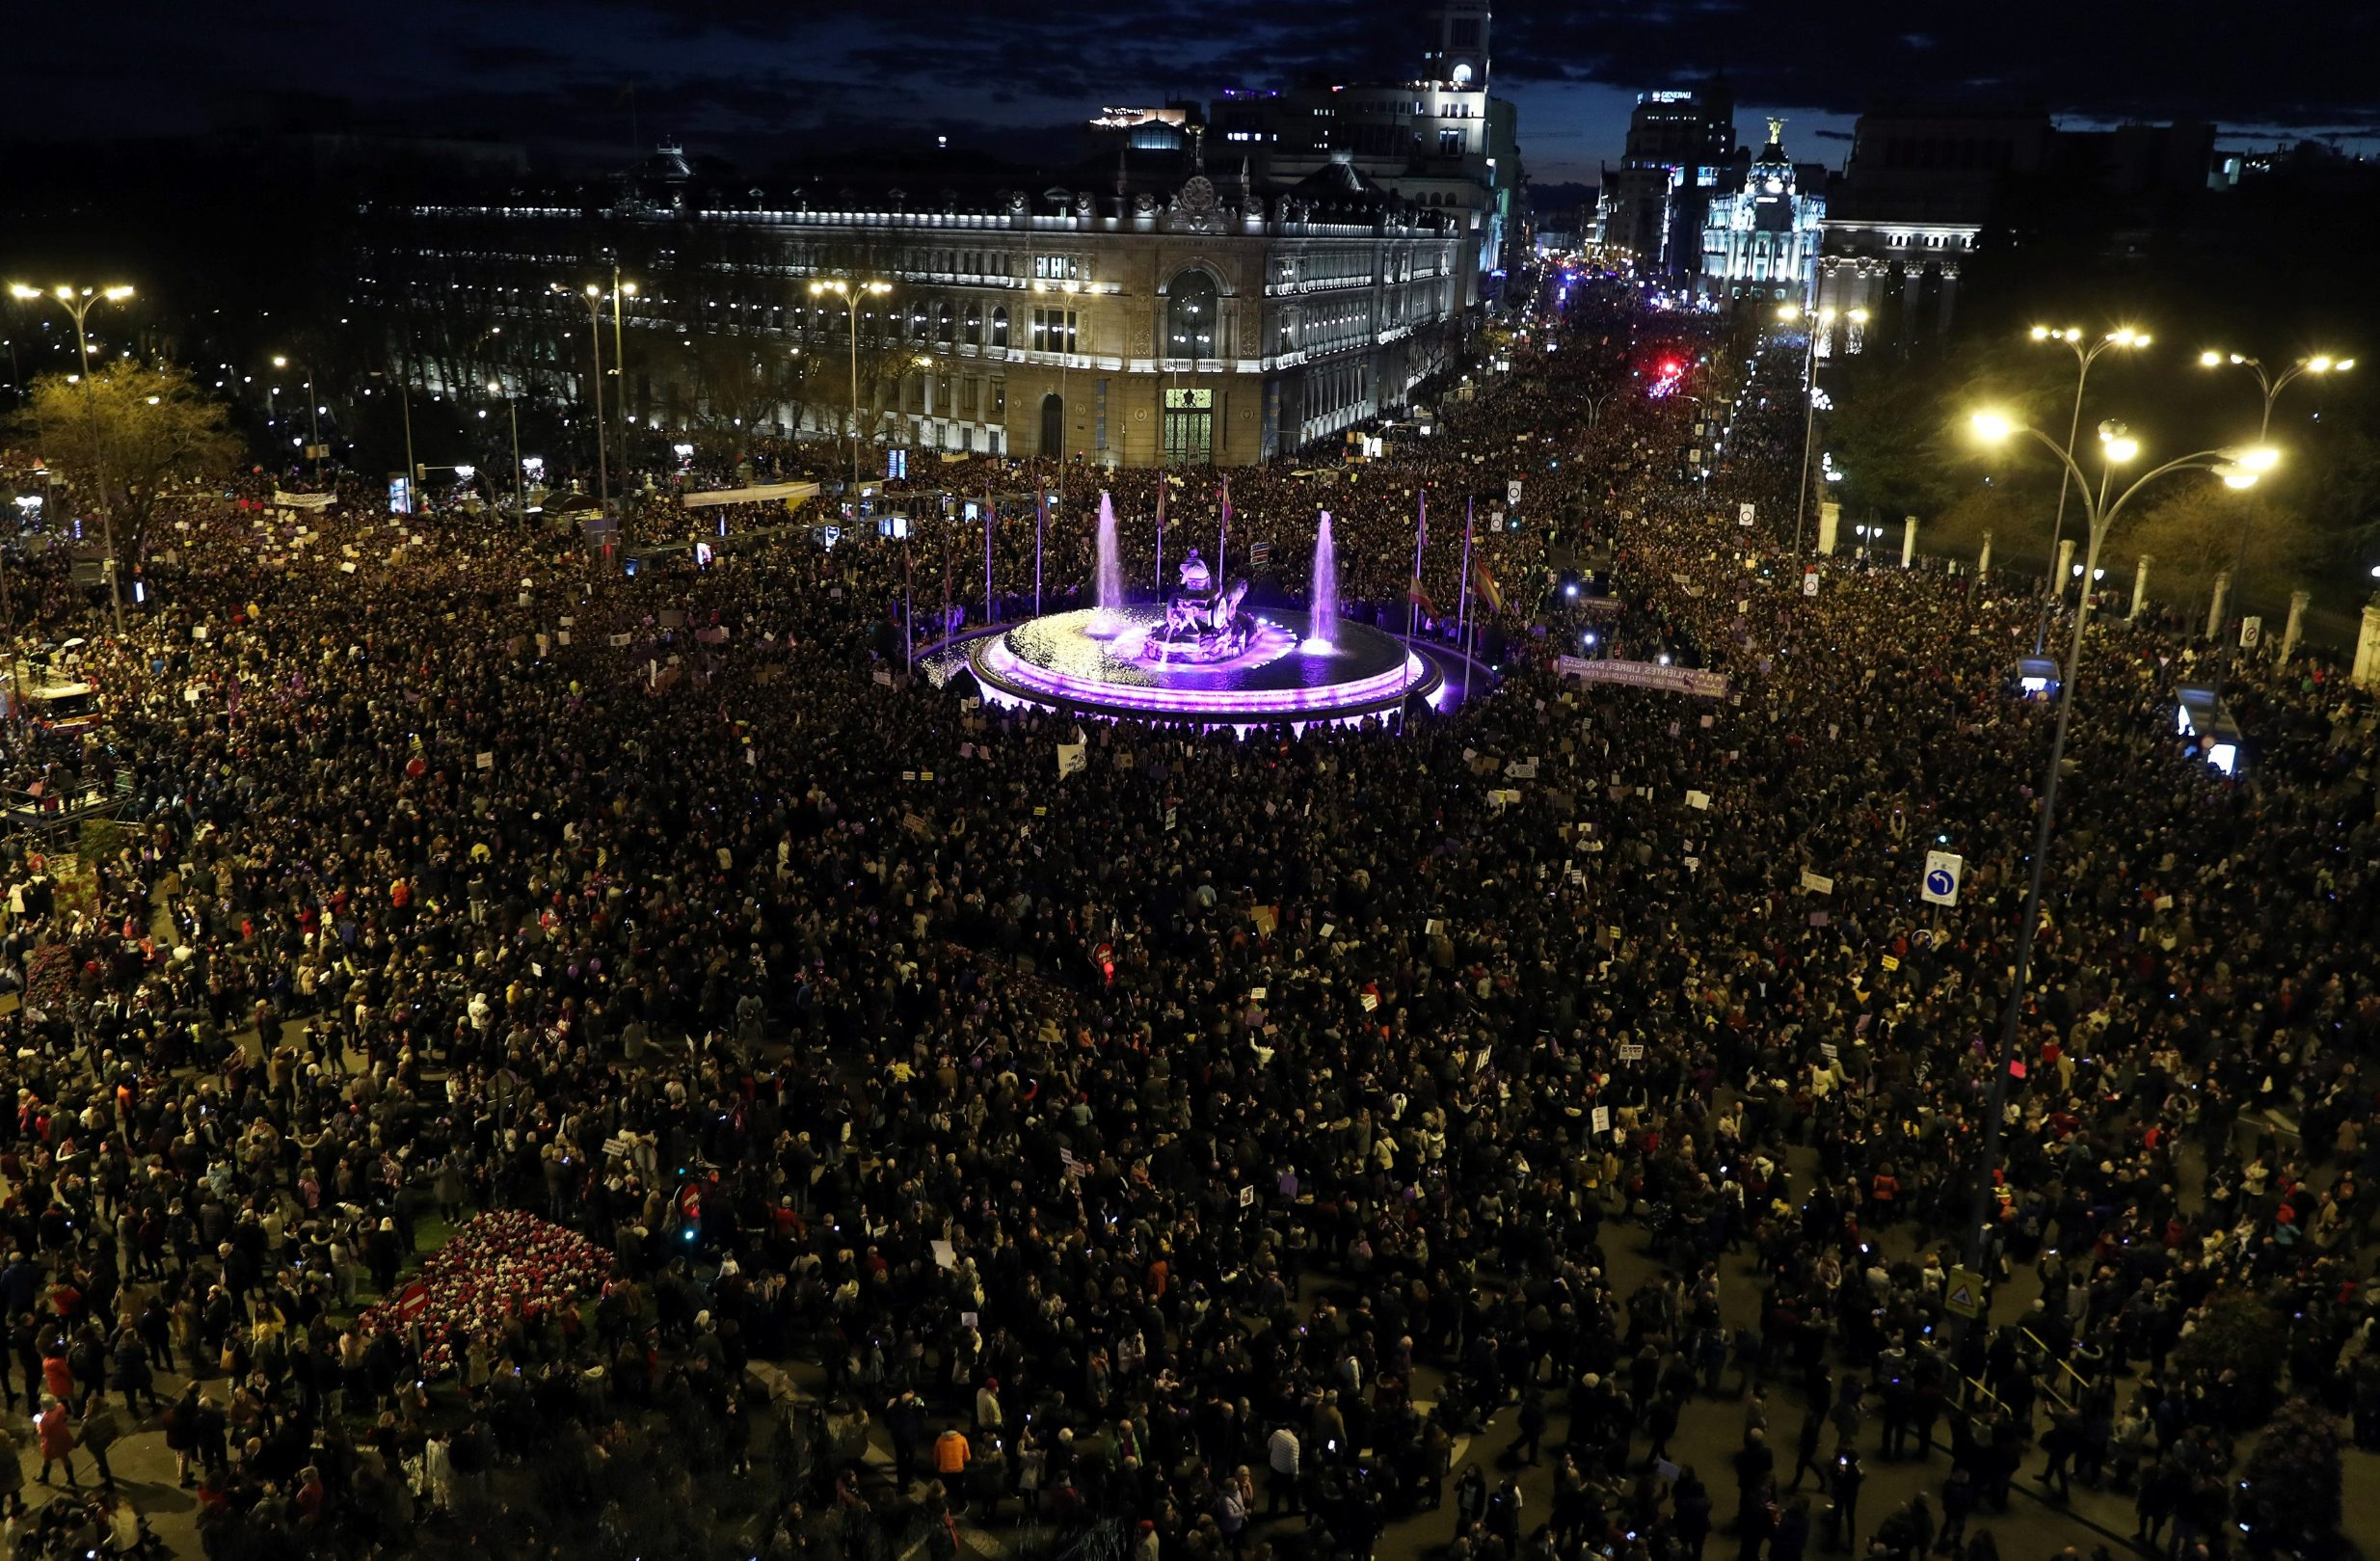 The Cibeles fountain is lit as people take part in a demonstration during a nationwide feminist strike on International Women's Day in Madrid, Spain, March 8, 2019. REUTERS/Sergio Perez